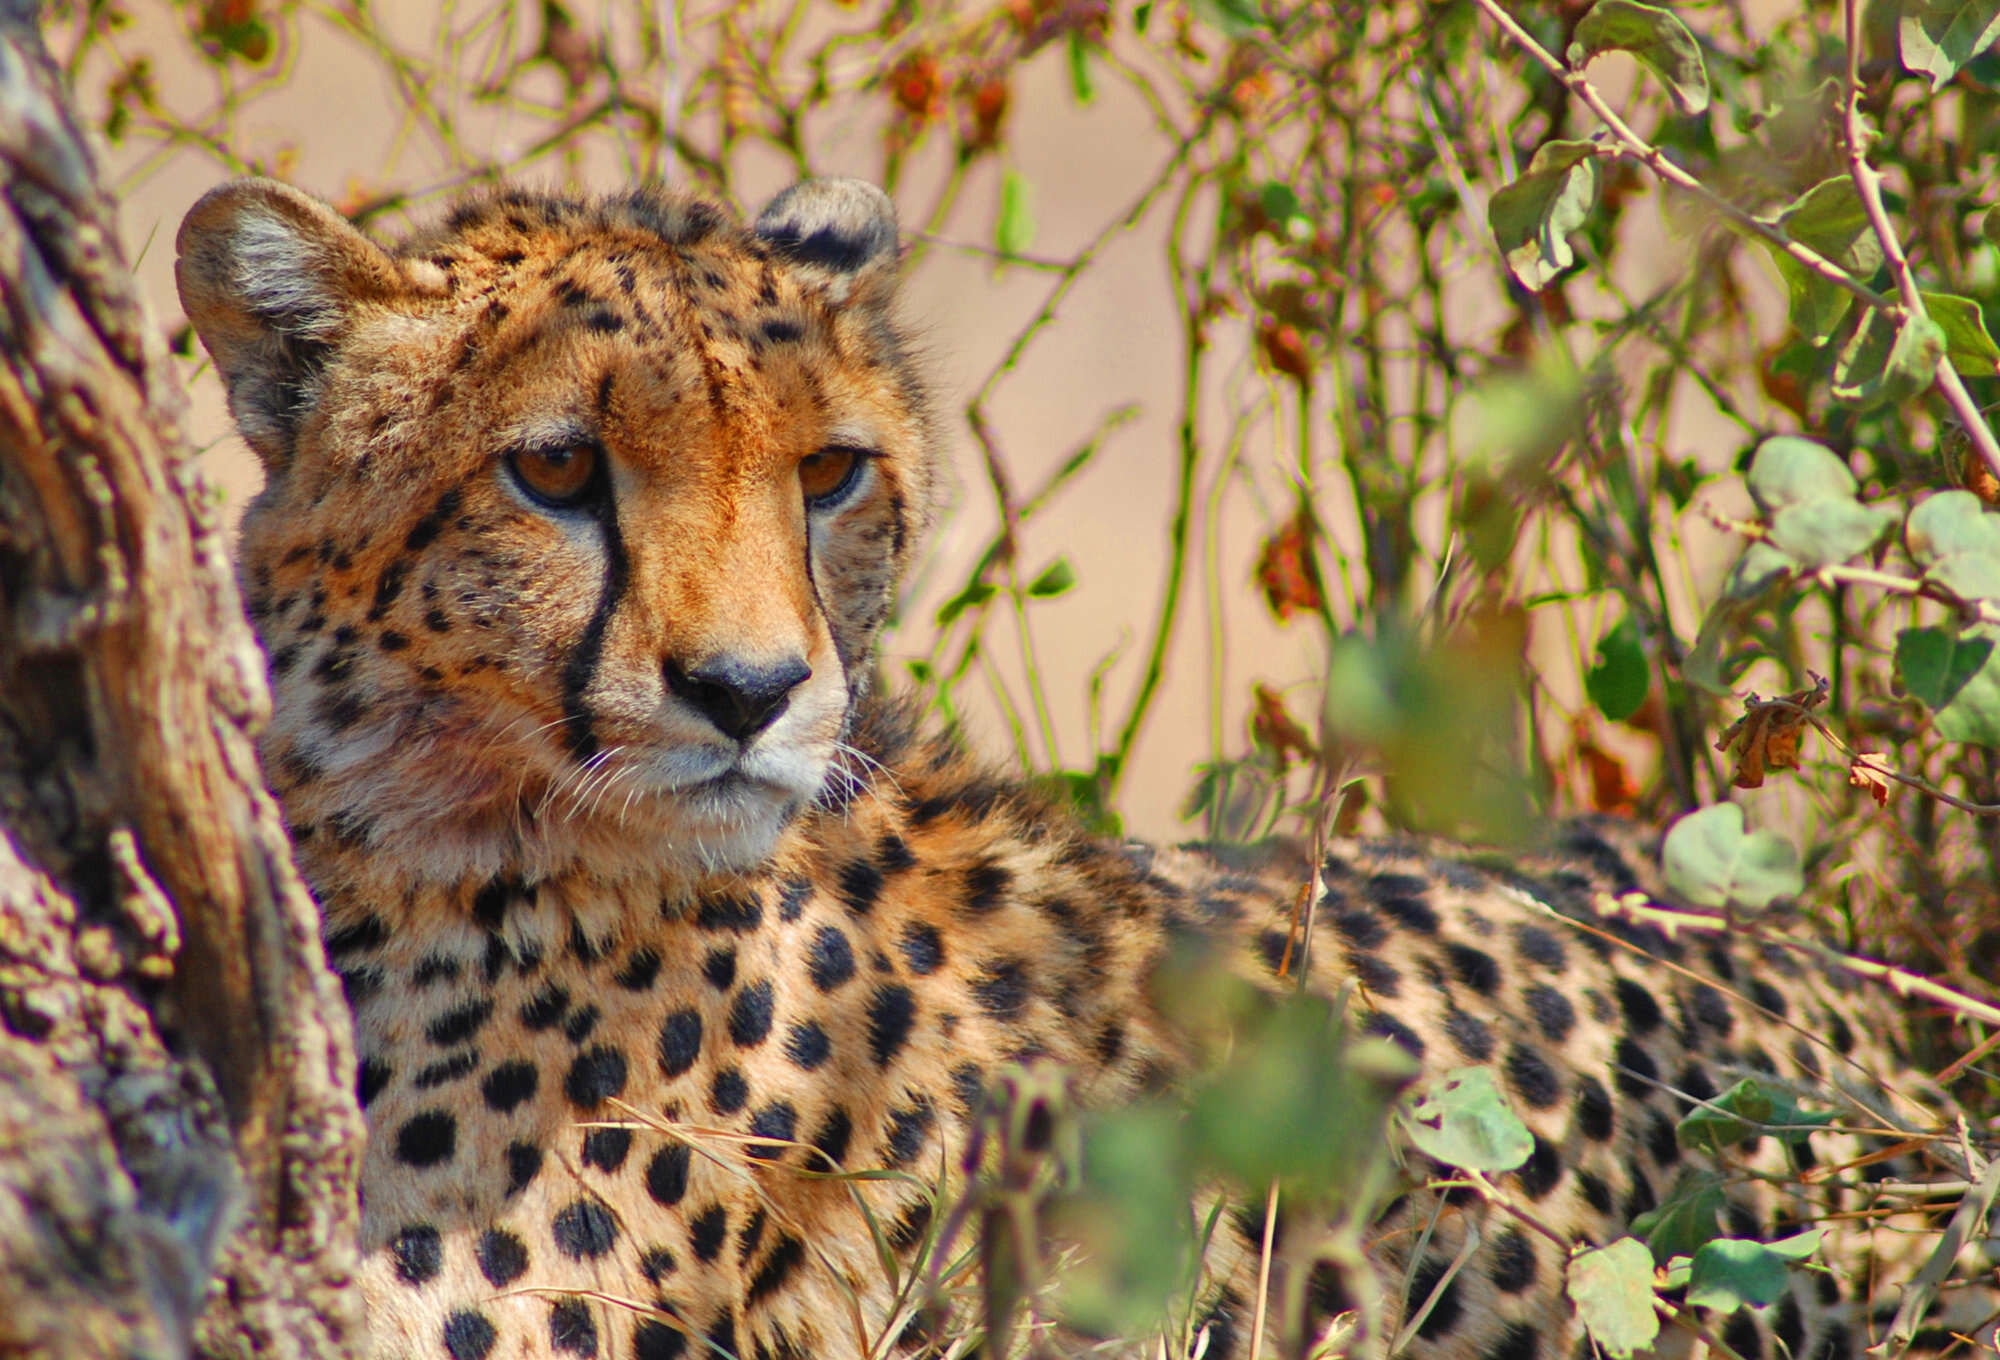 Safari in Namibia and Botswana with wildlife viewing in Etosha, Mahango and Bwabwata National Parks; boat cruises and birdwatching along the Okavango Delta Panhandle; and loop back to Windhoek through the vast Kalahari Desert.